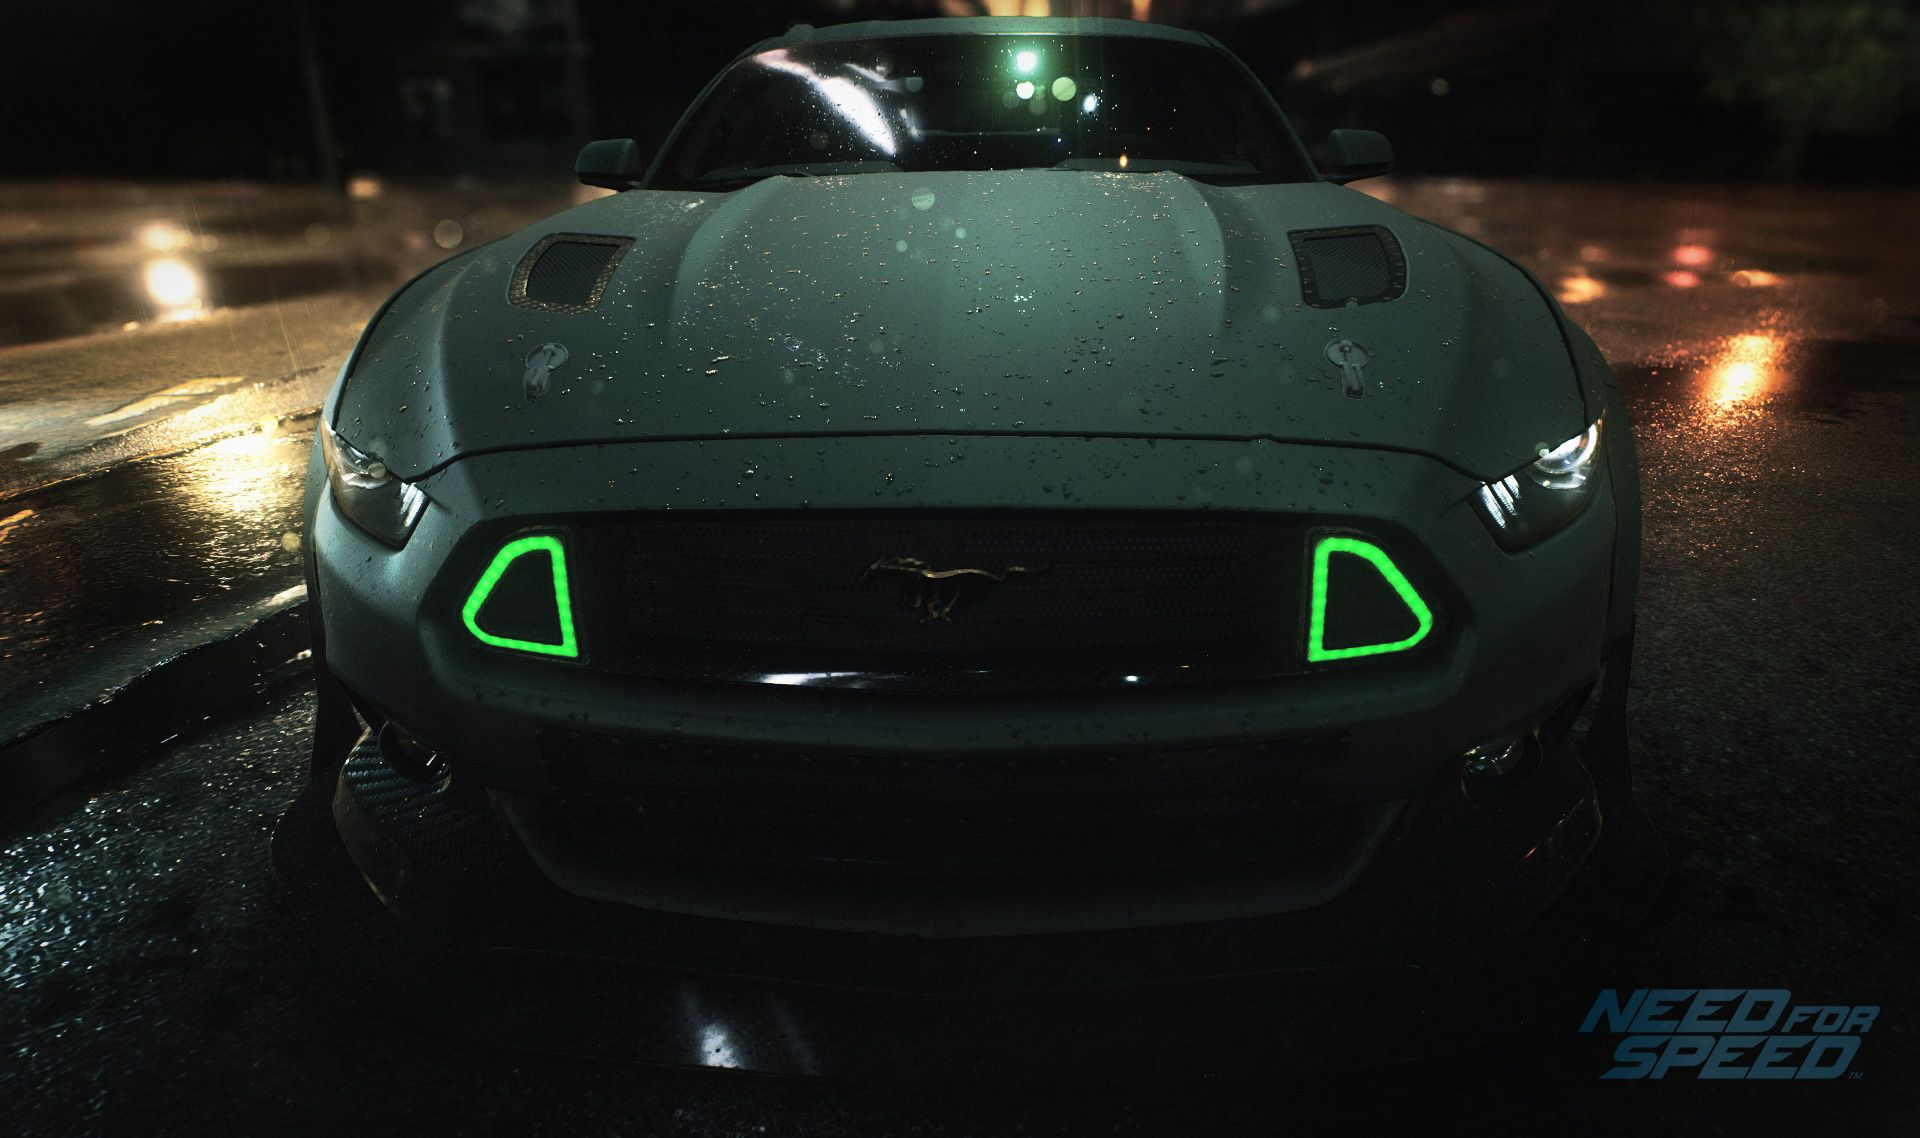 Sharing My Thoughts On The Teaser Trailer For Need For Speed And